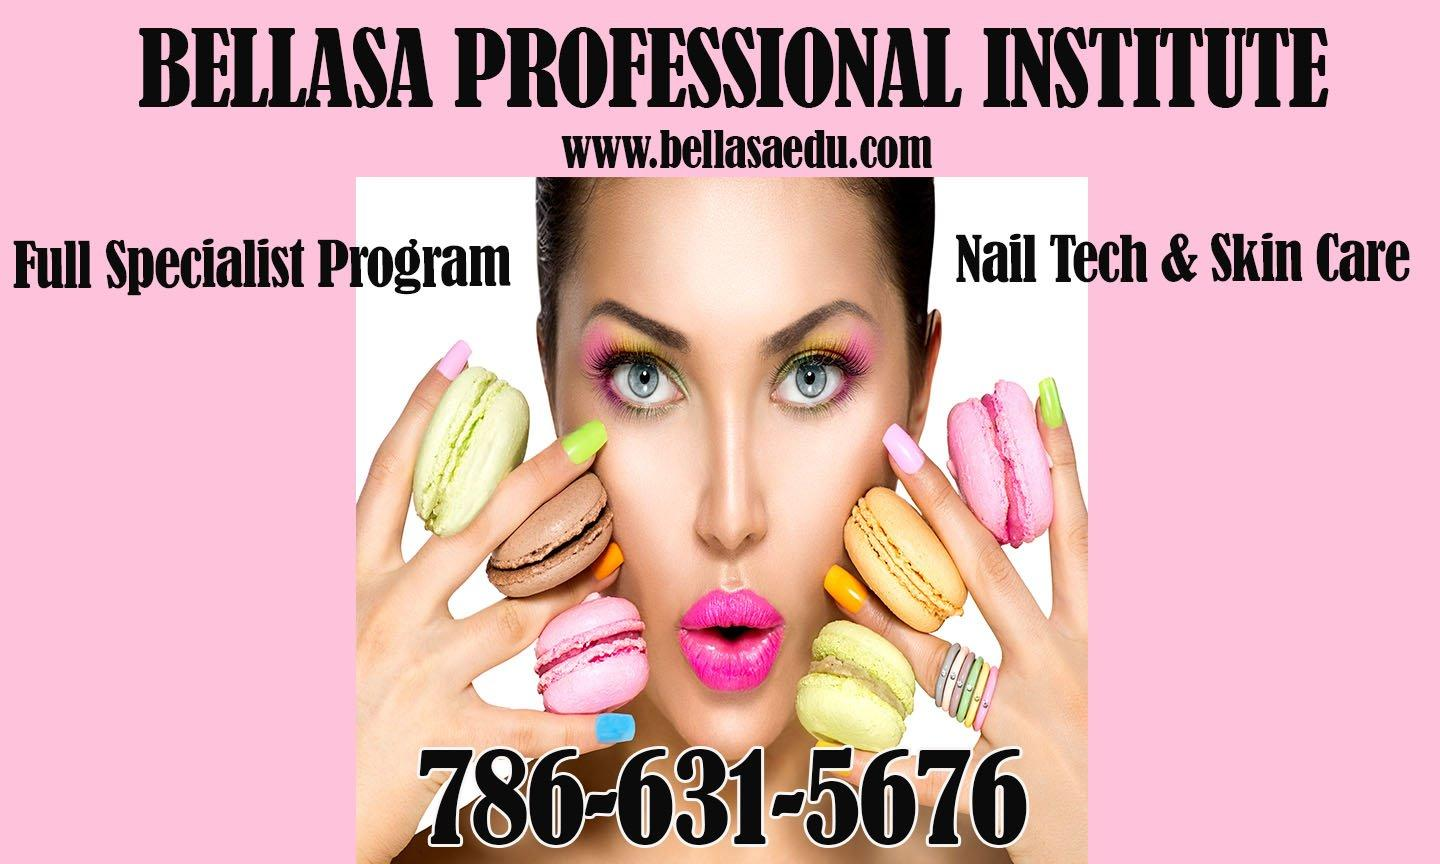 Bellasa Professional Institute image 16